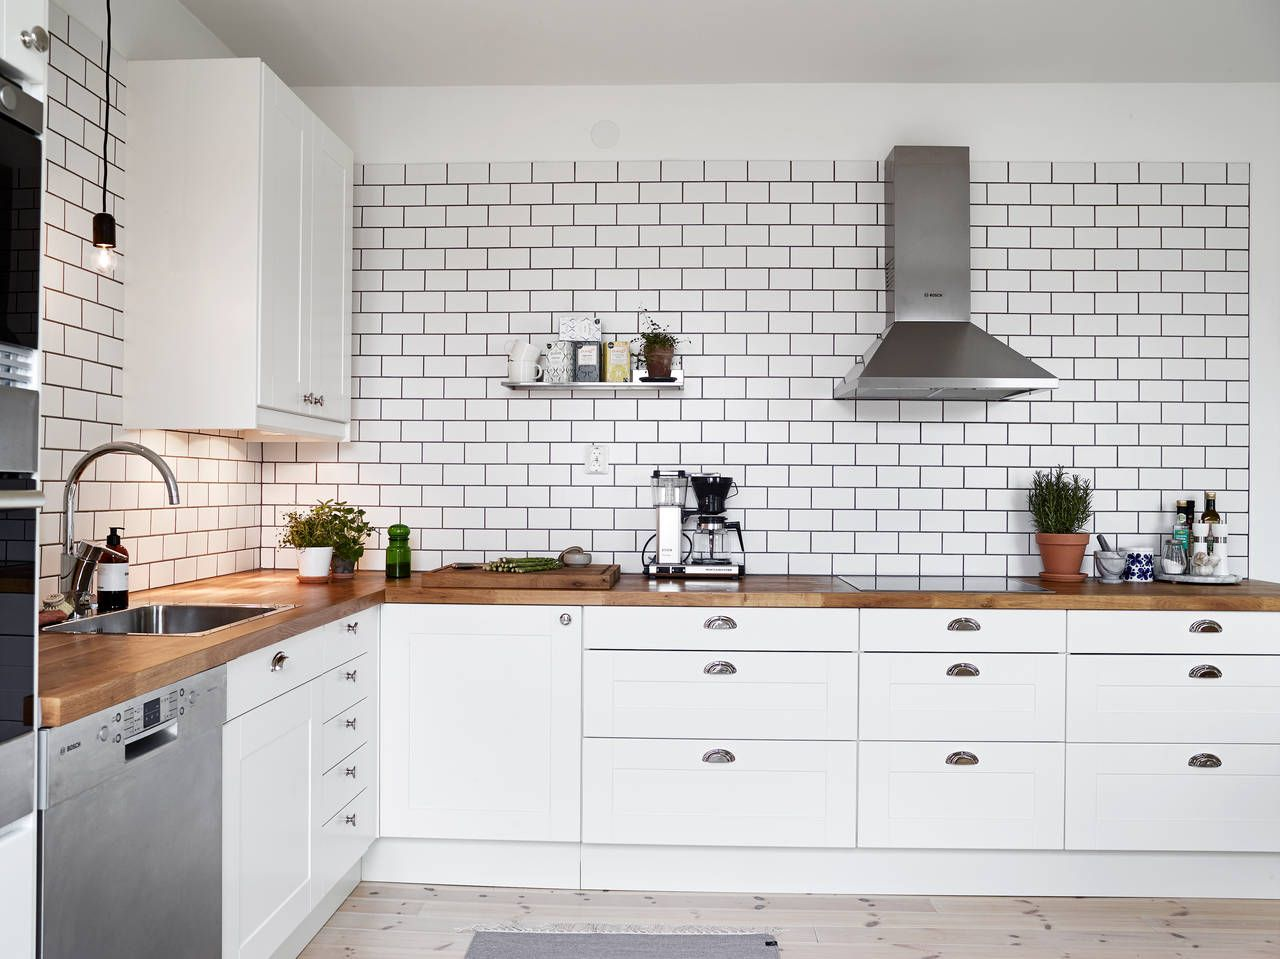 A white tiles black grout kind of kitchen coco lapine design a white tiles black grout kind of kitchen coco lapine design dailygadgetfo Image collections